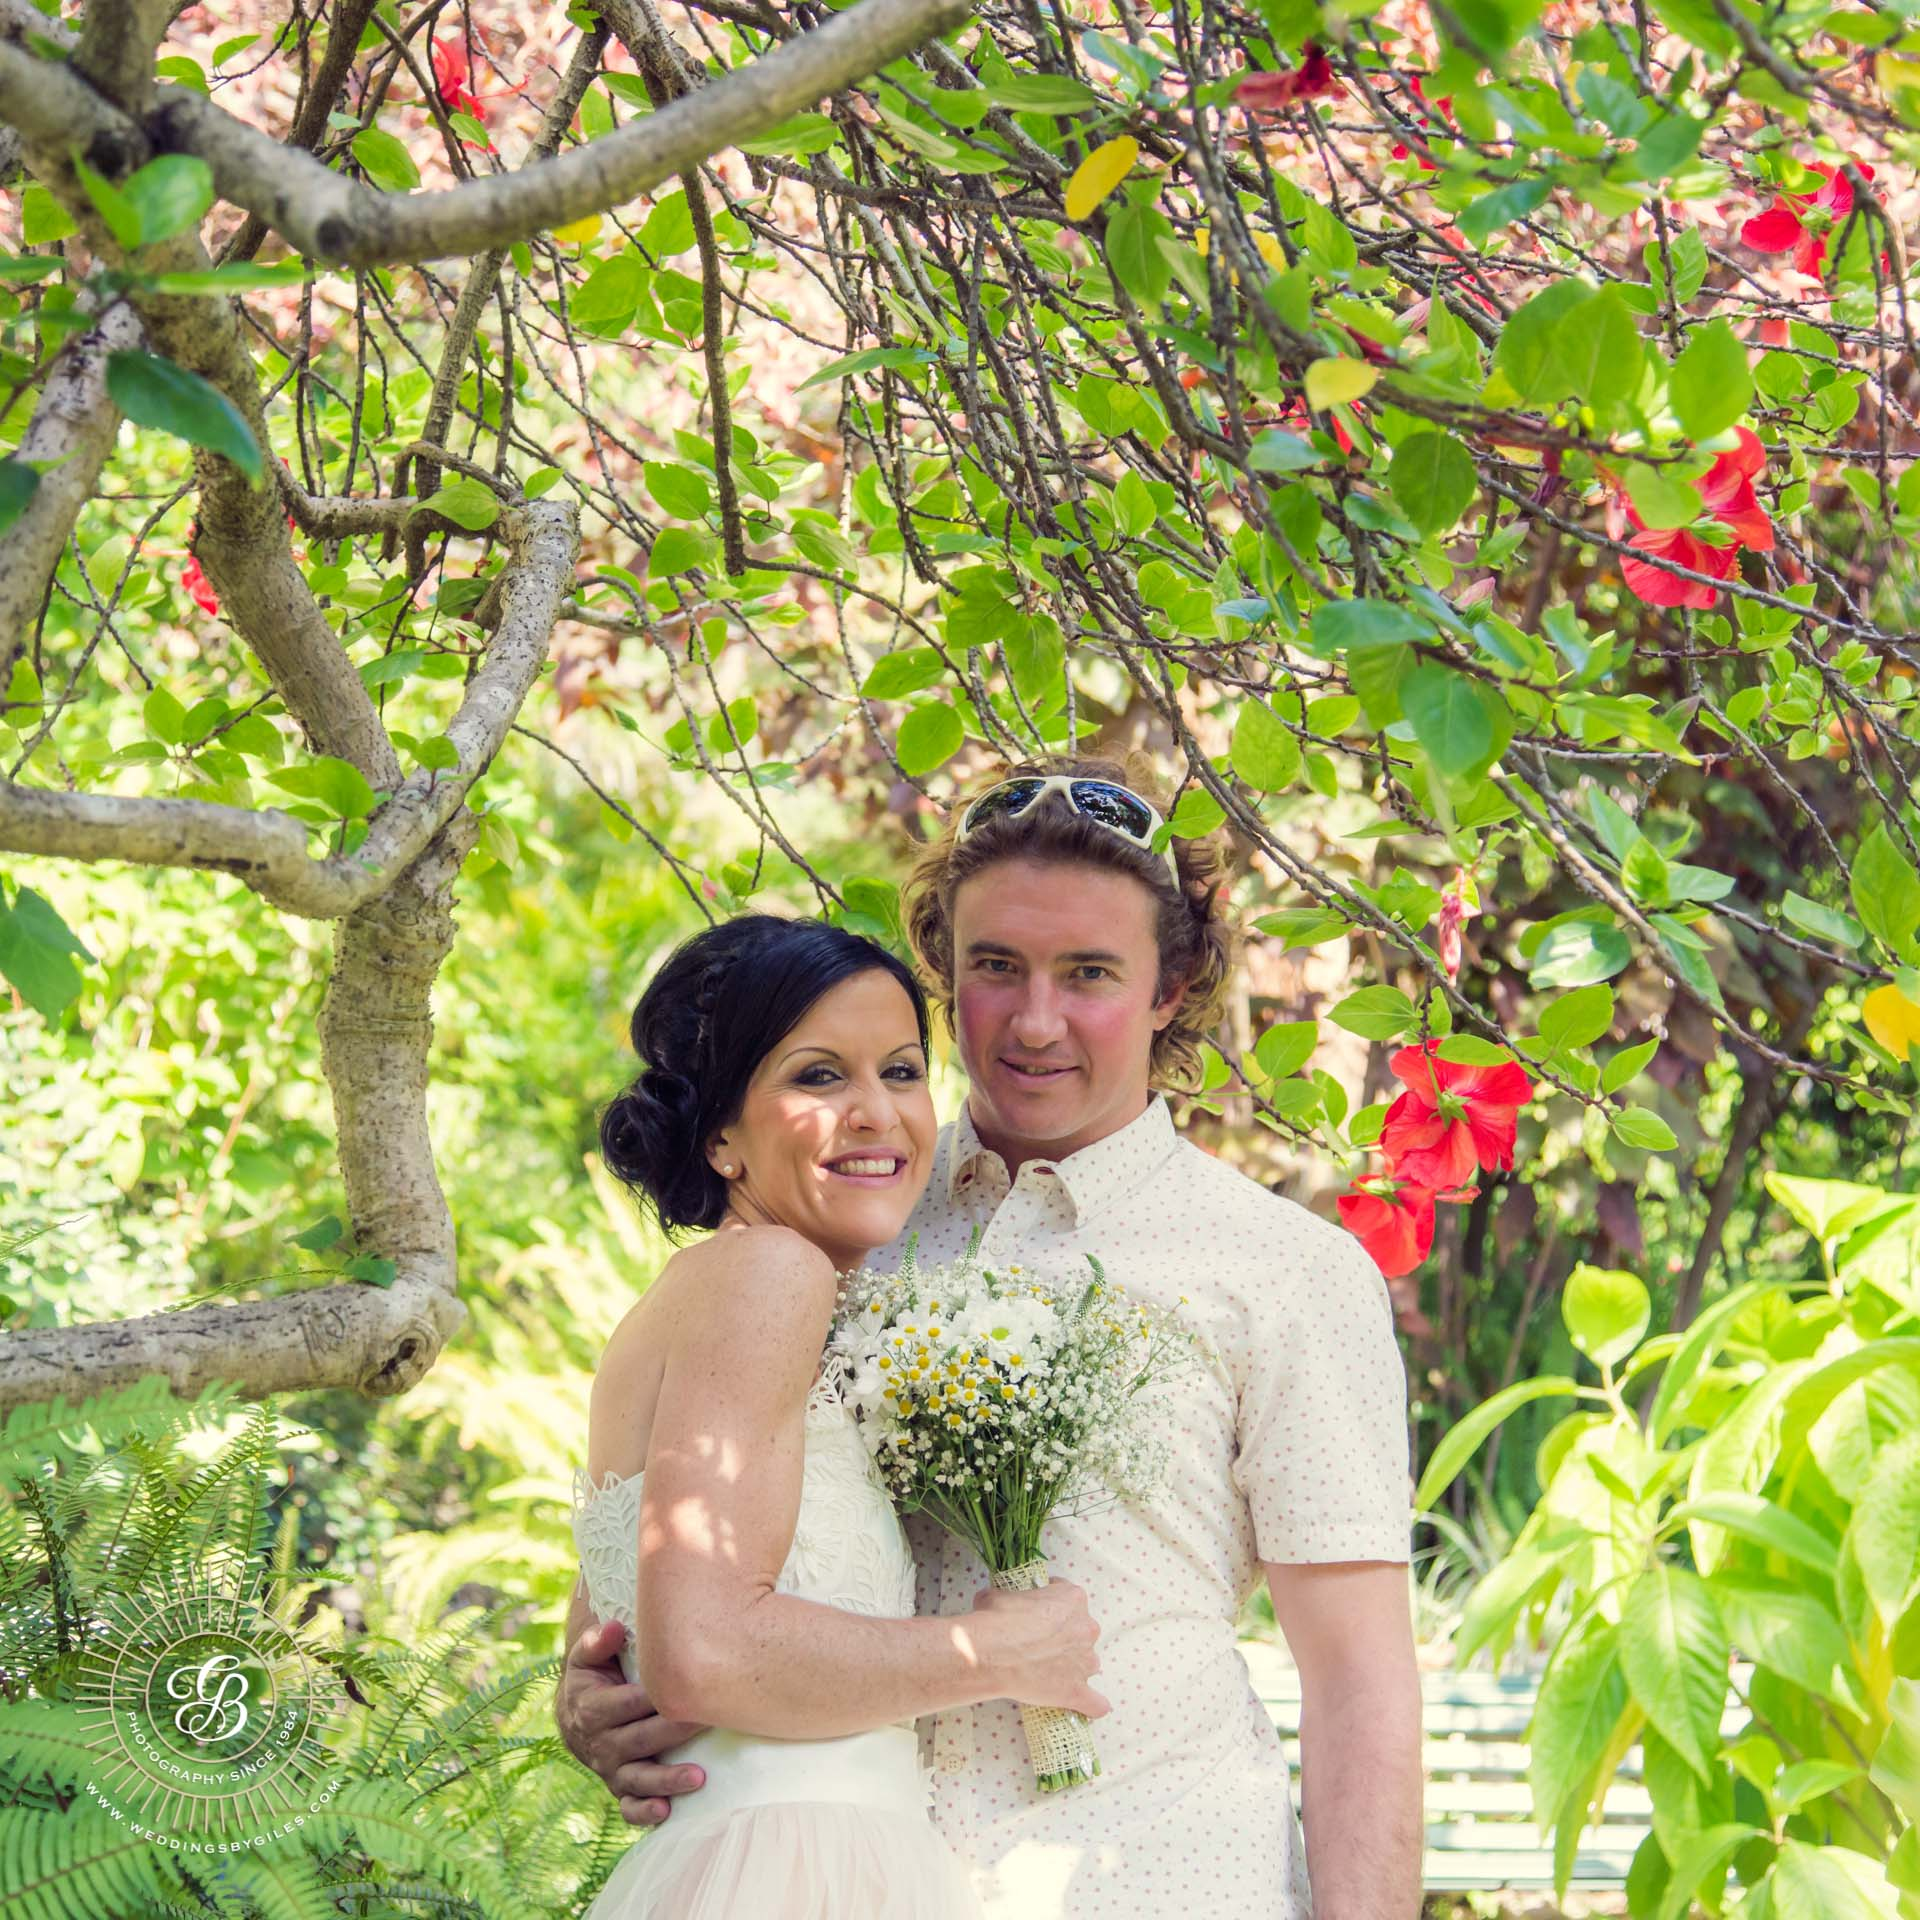 Wedding portrait in tropical garden